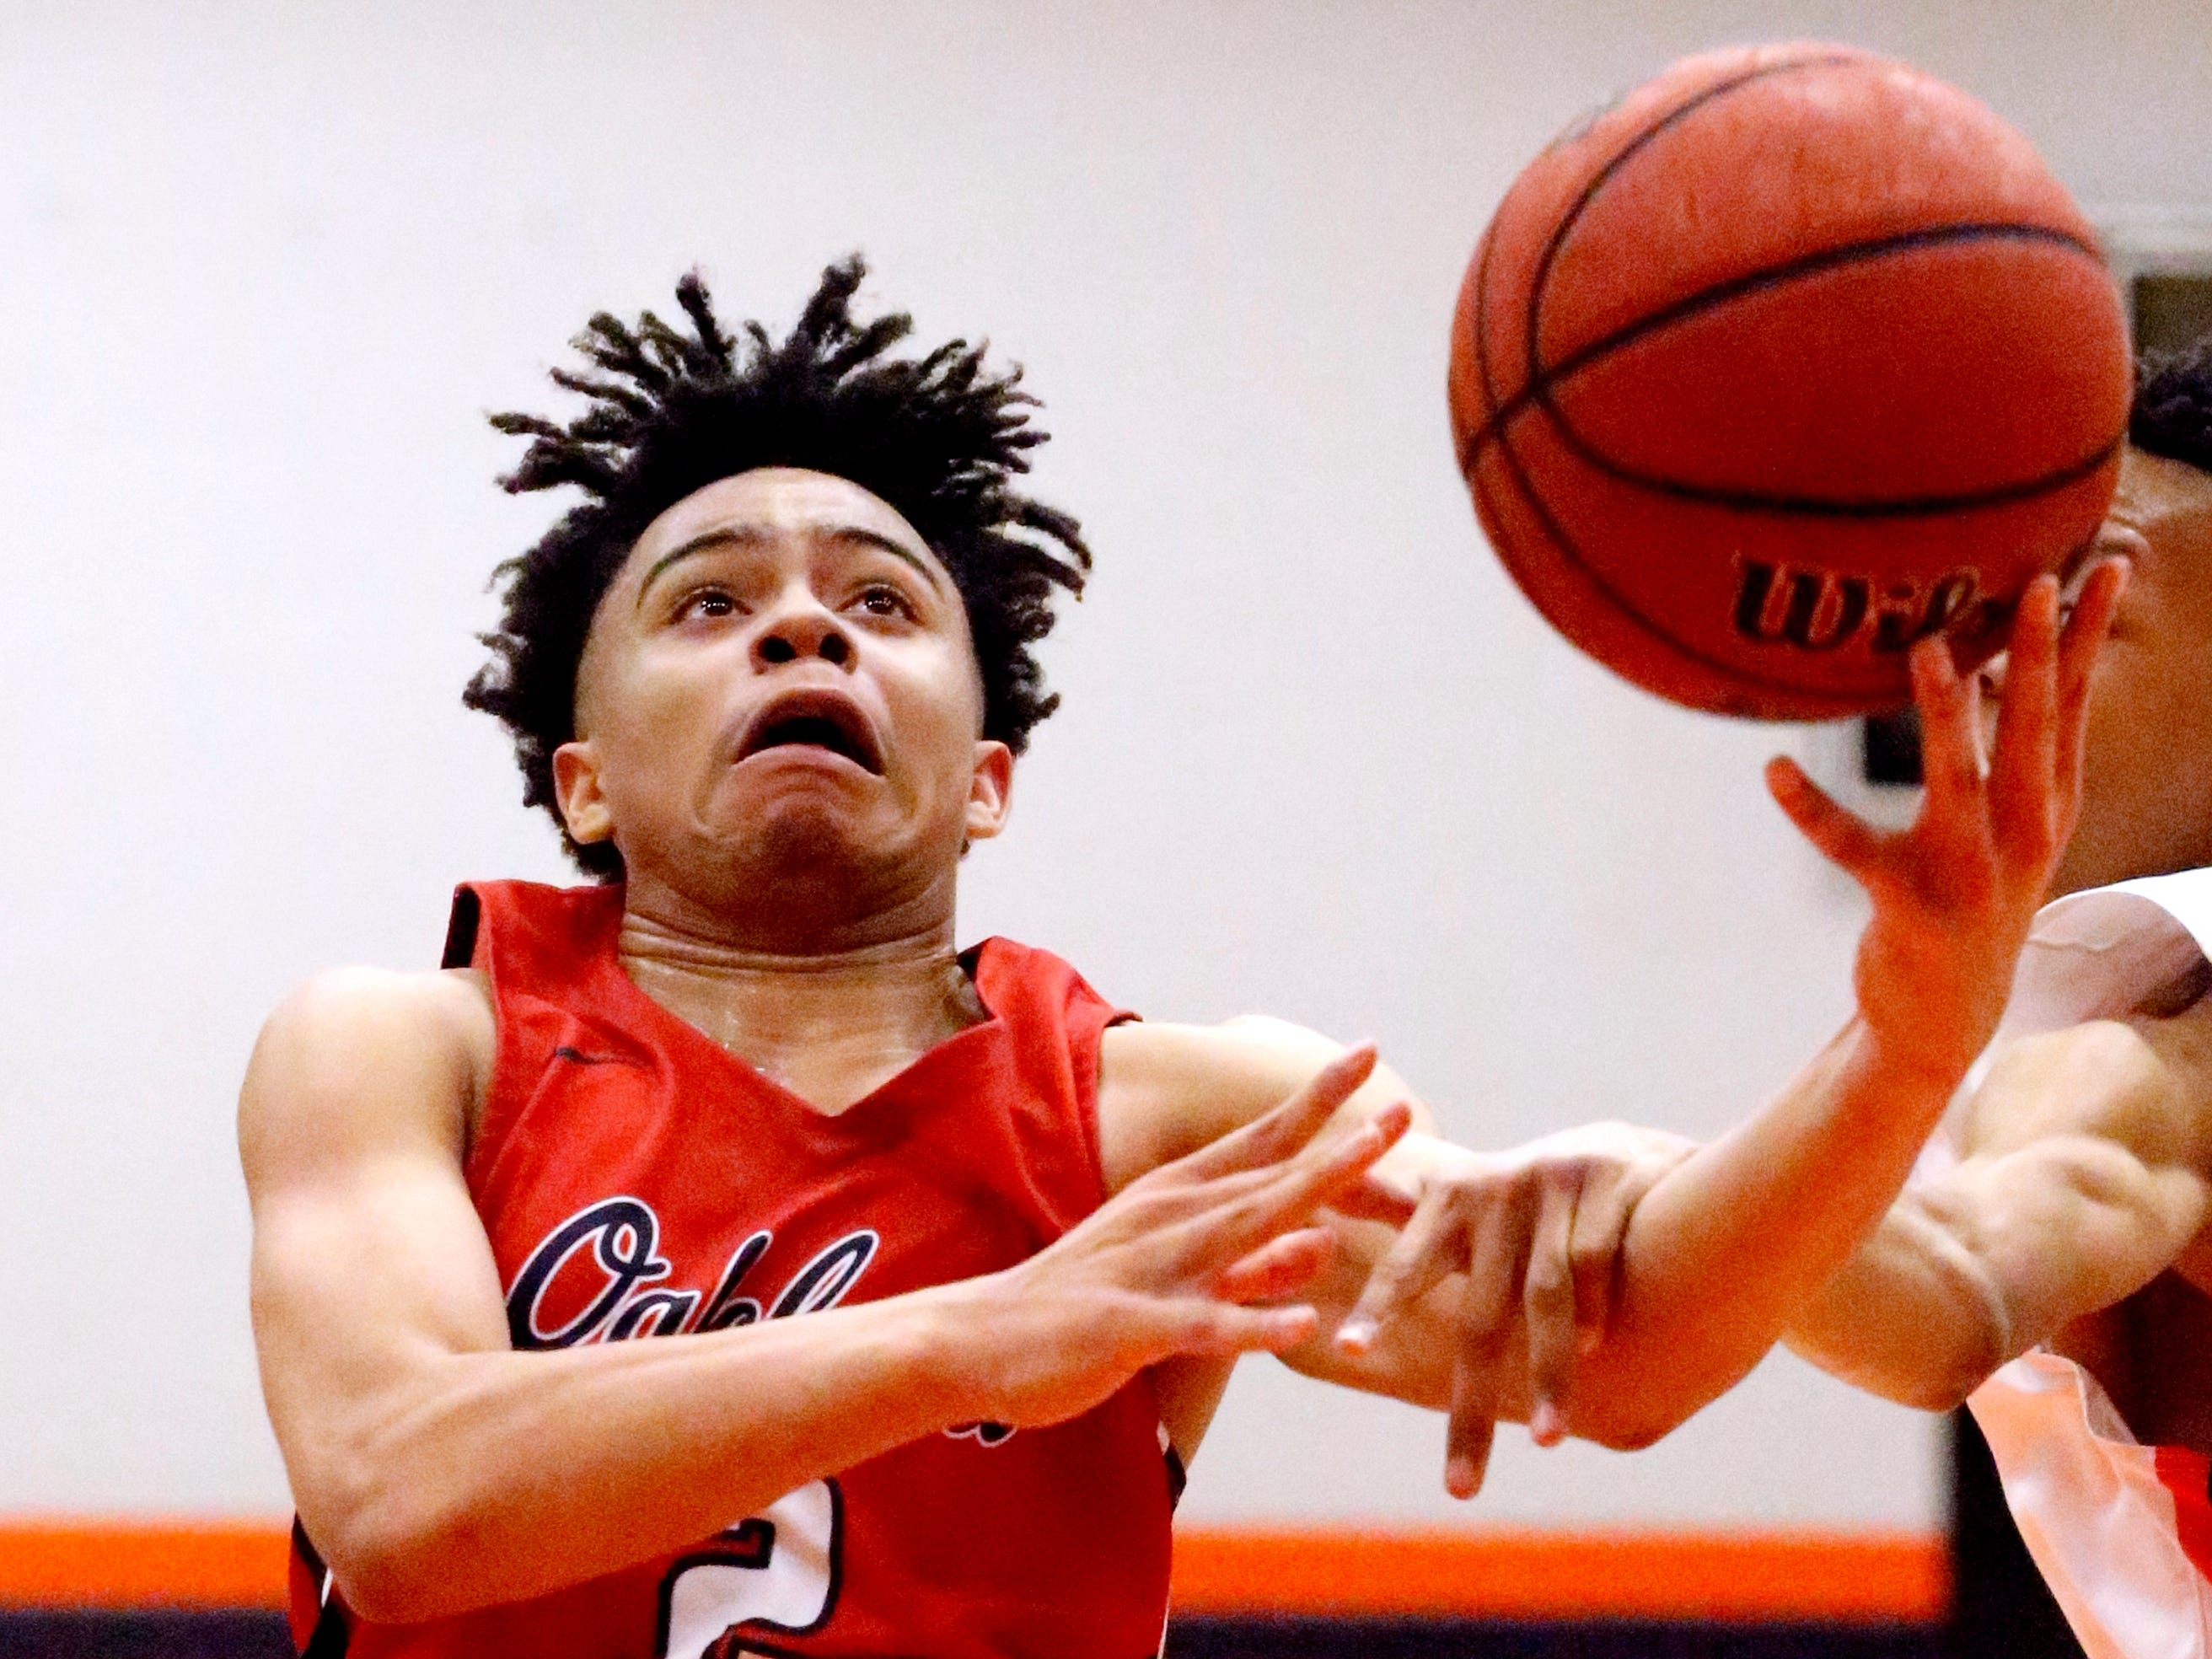 Oakland's Ray Tyler (2) is fouled as he goes up for a shot during the game against Blackman on Friday, Feb. 8, 2019.